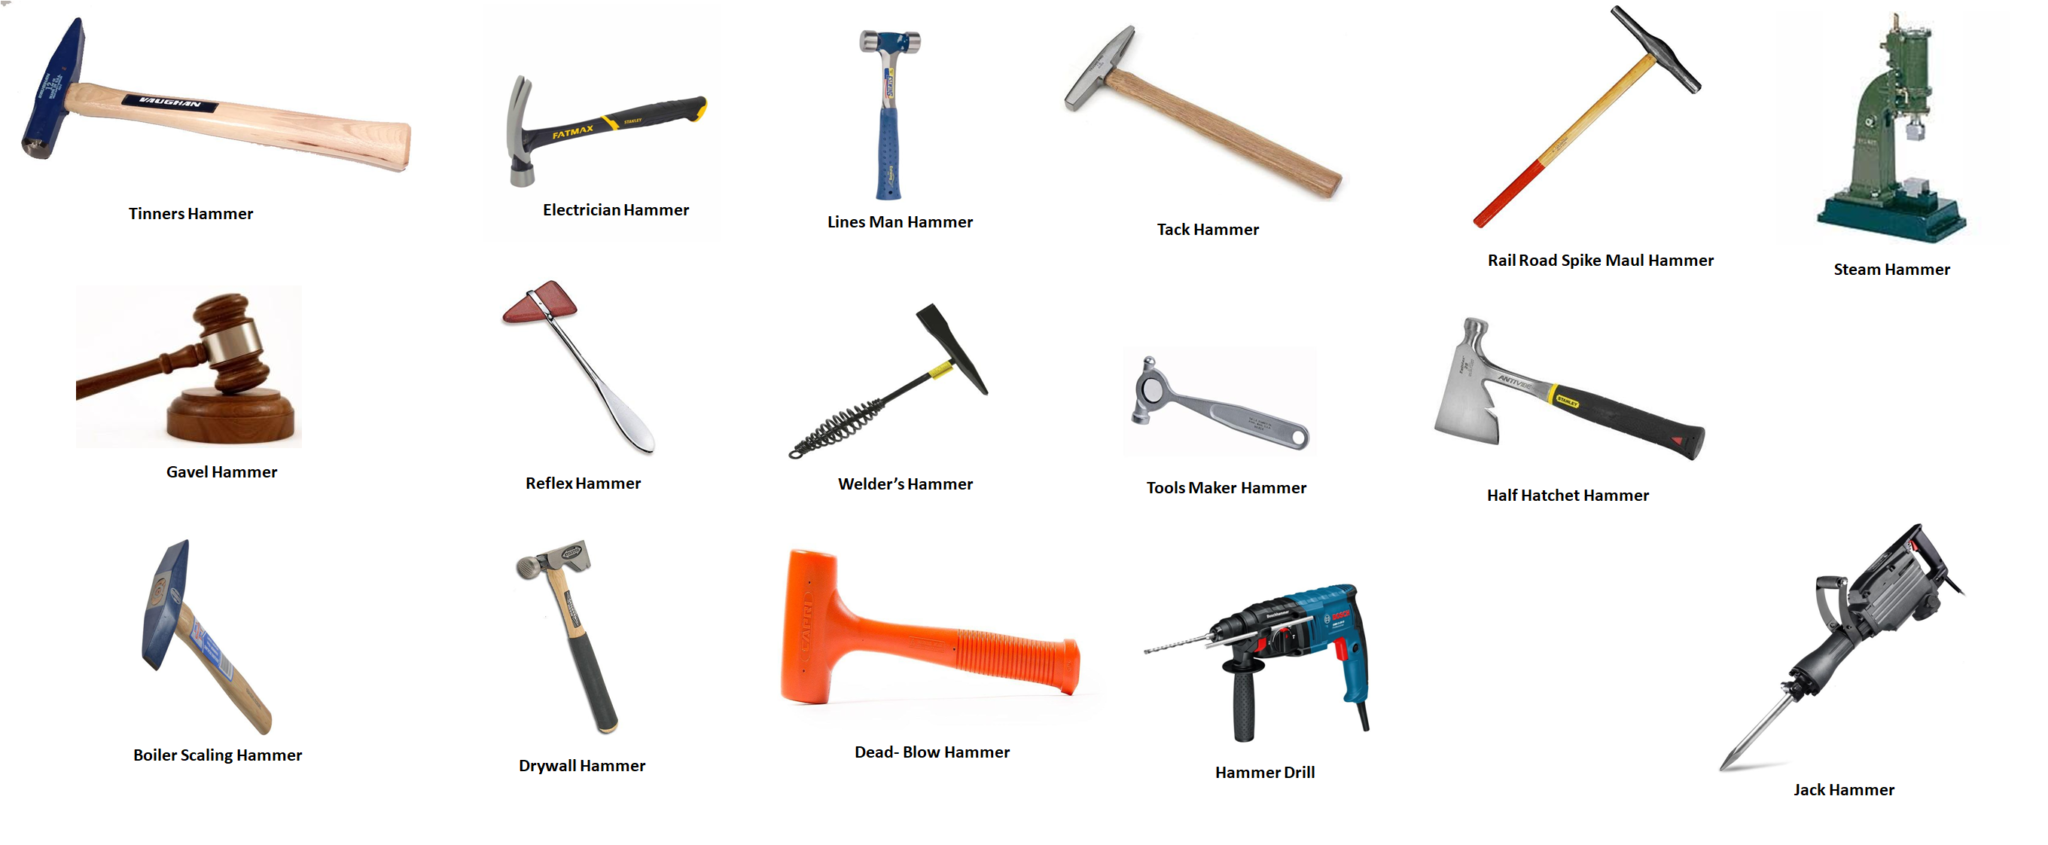 37 Types Of Hammers That You Don T Know Mechanical Booster 48oz highvisual dead blow hammer model: 37 types of hammers that you don t know